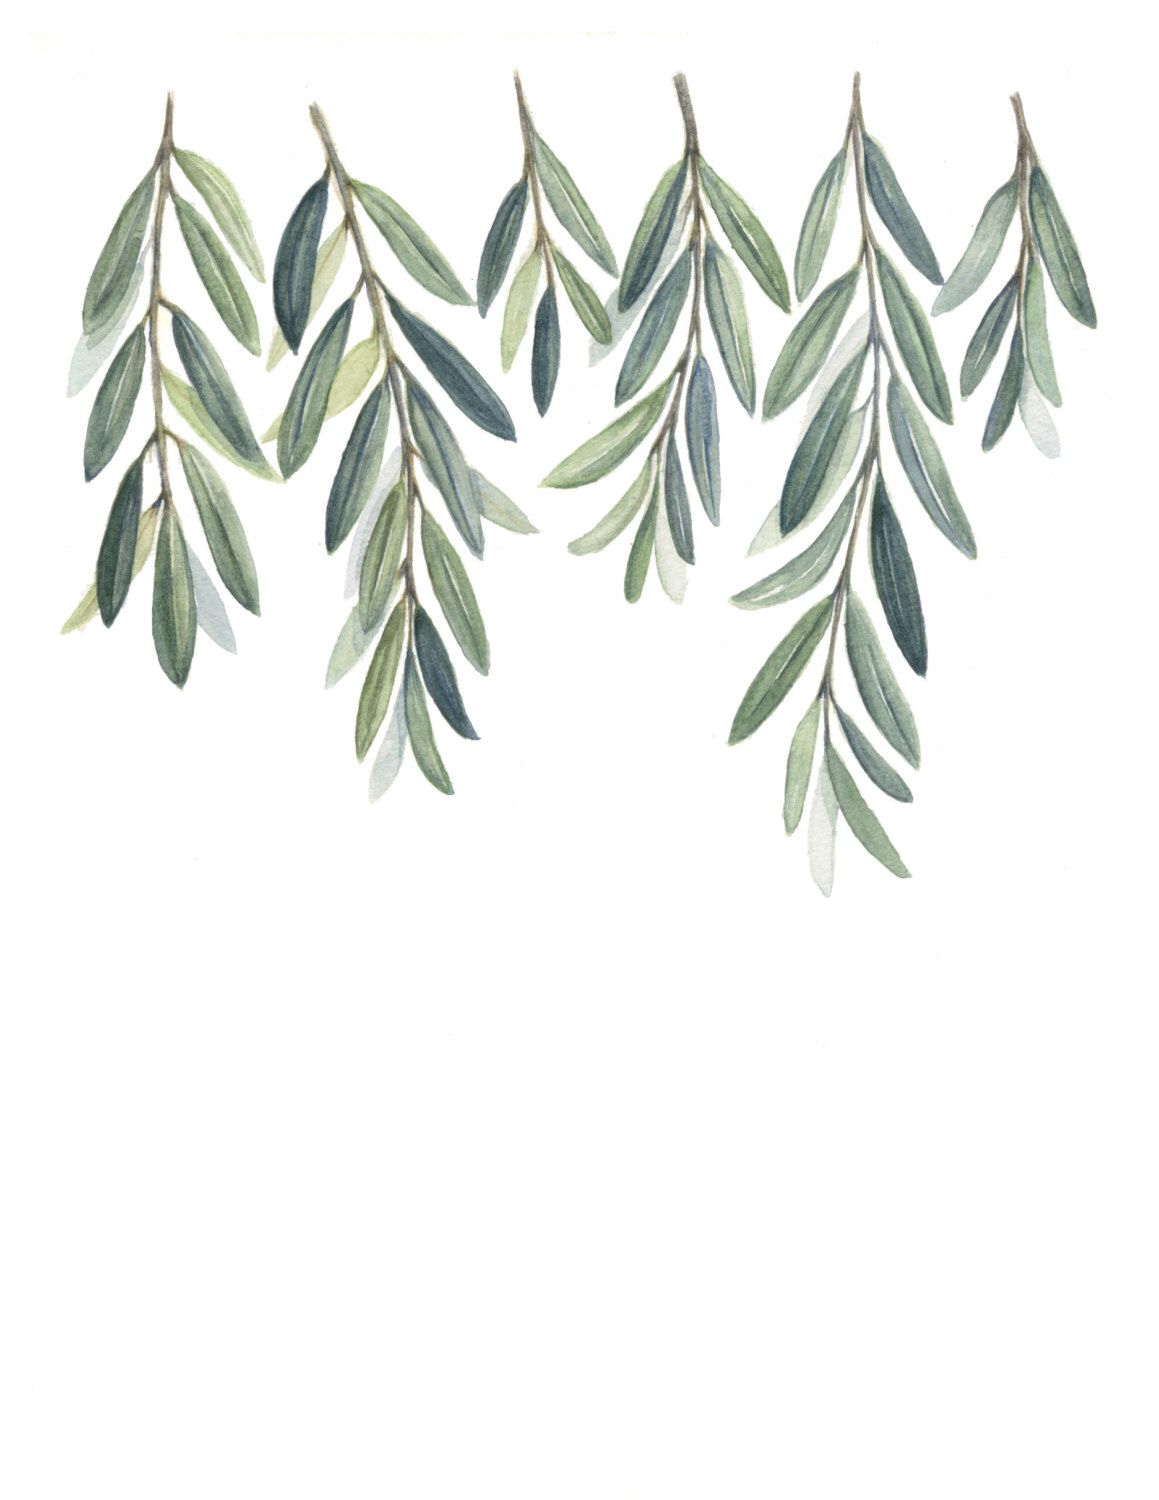 Olive Branches Art Print Olive Branch Leaves Painting Greenery Painting Green Branches Greenery Home Decor Print Art Olive Branch Art Branch Art Painted Leaves